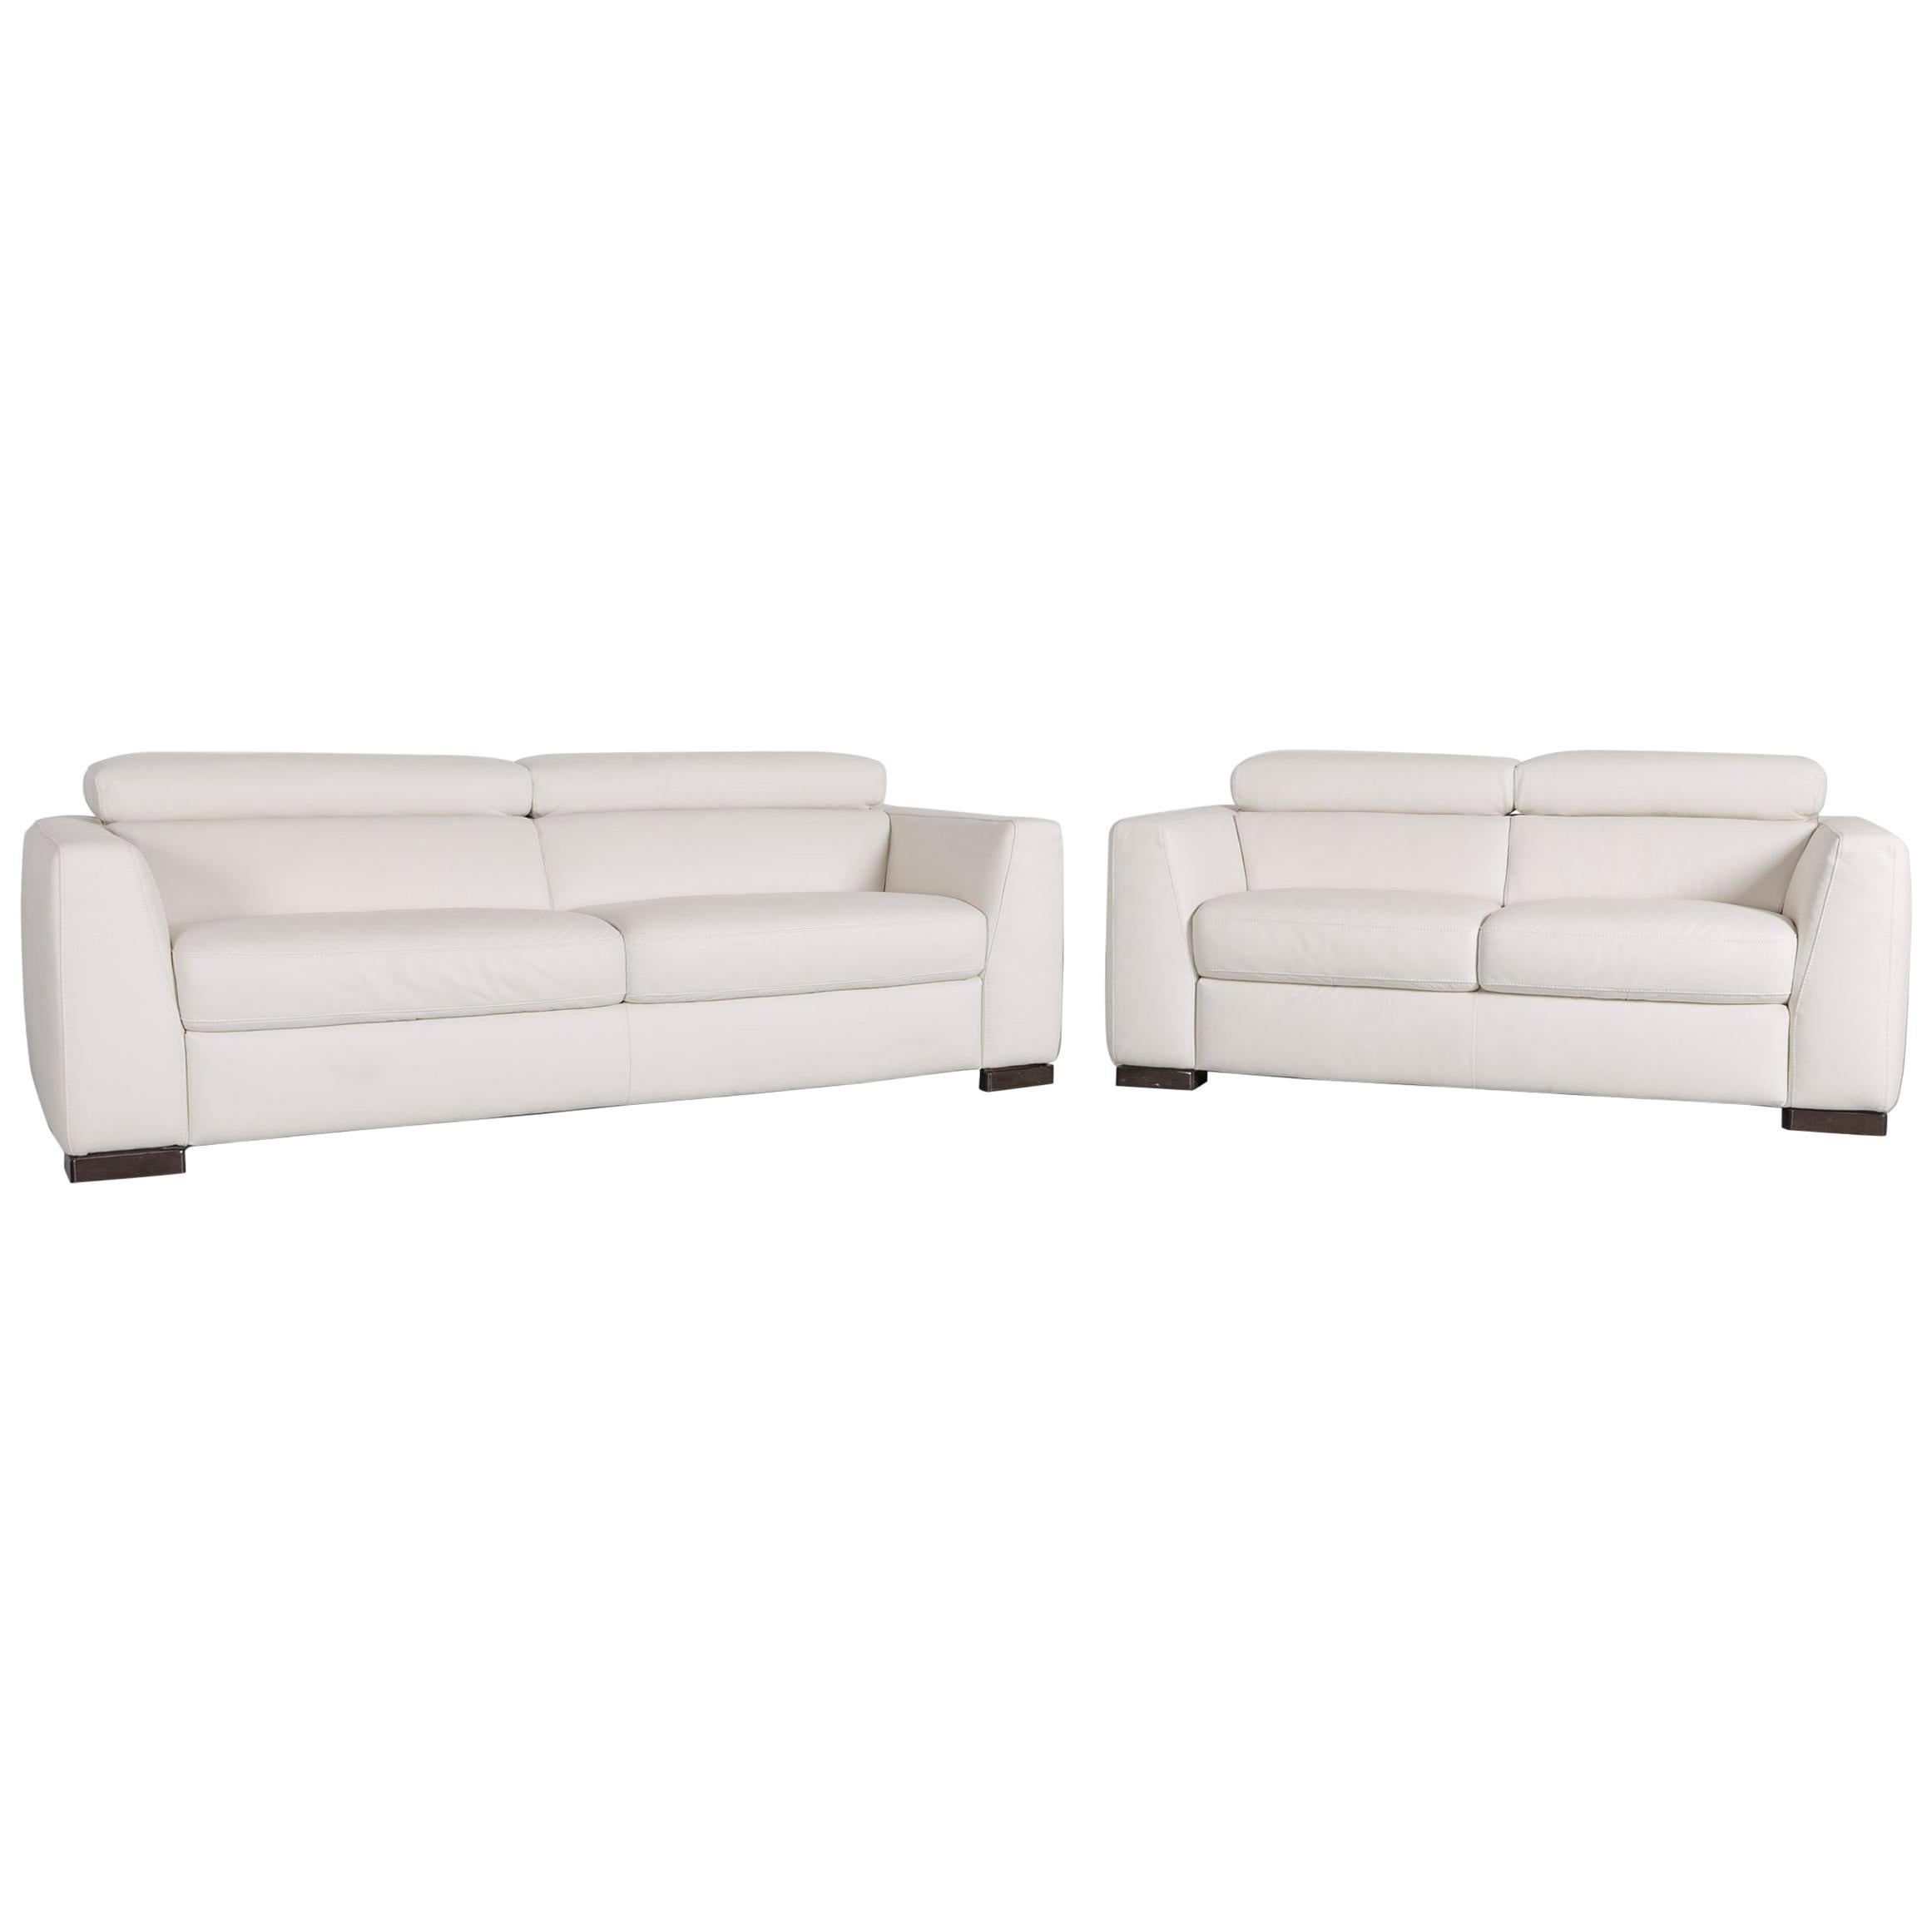 ital sofa – Home and Textiles